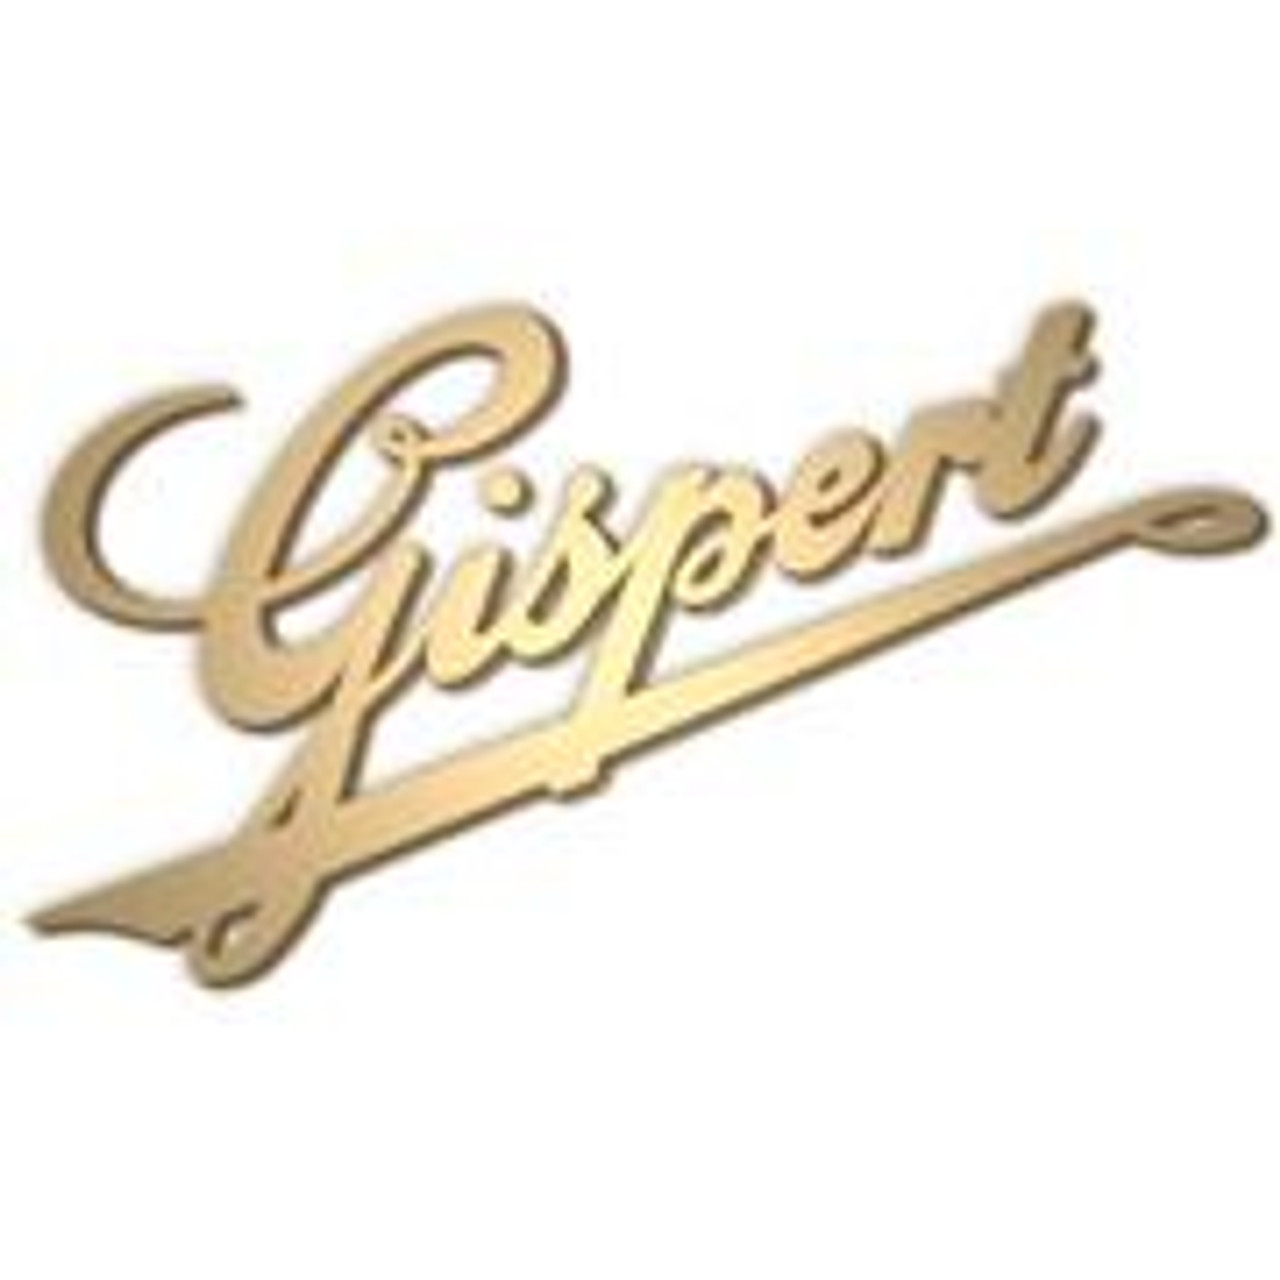 Gispert Churchill Cigars - 7 x 54 (Pack of 5)